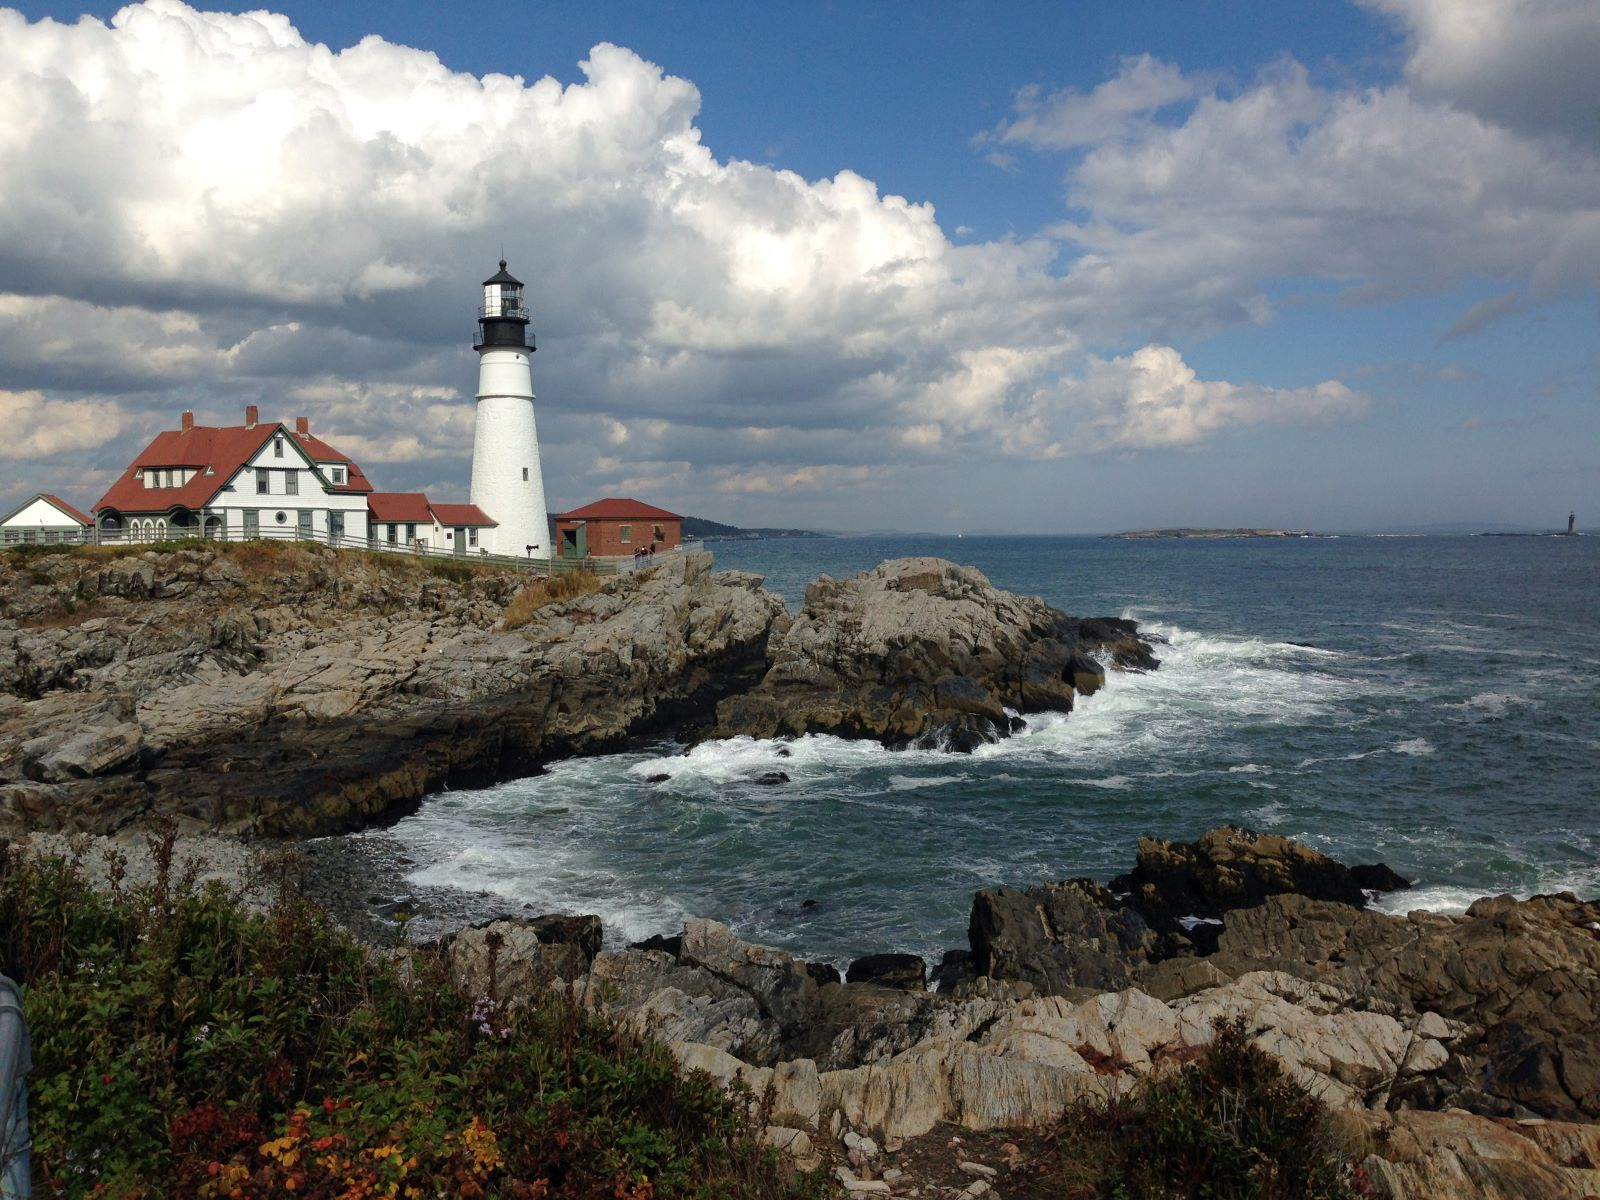 Places To Retire in Maine - Lighthouse on the shoreline of Maine blue skies with white billowy clouds and waves hitting the rocky shores